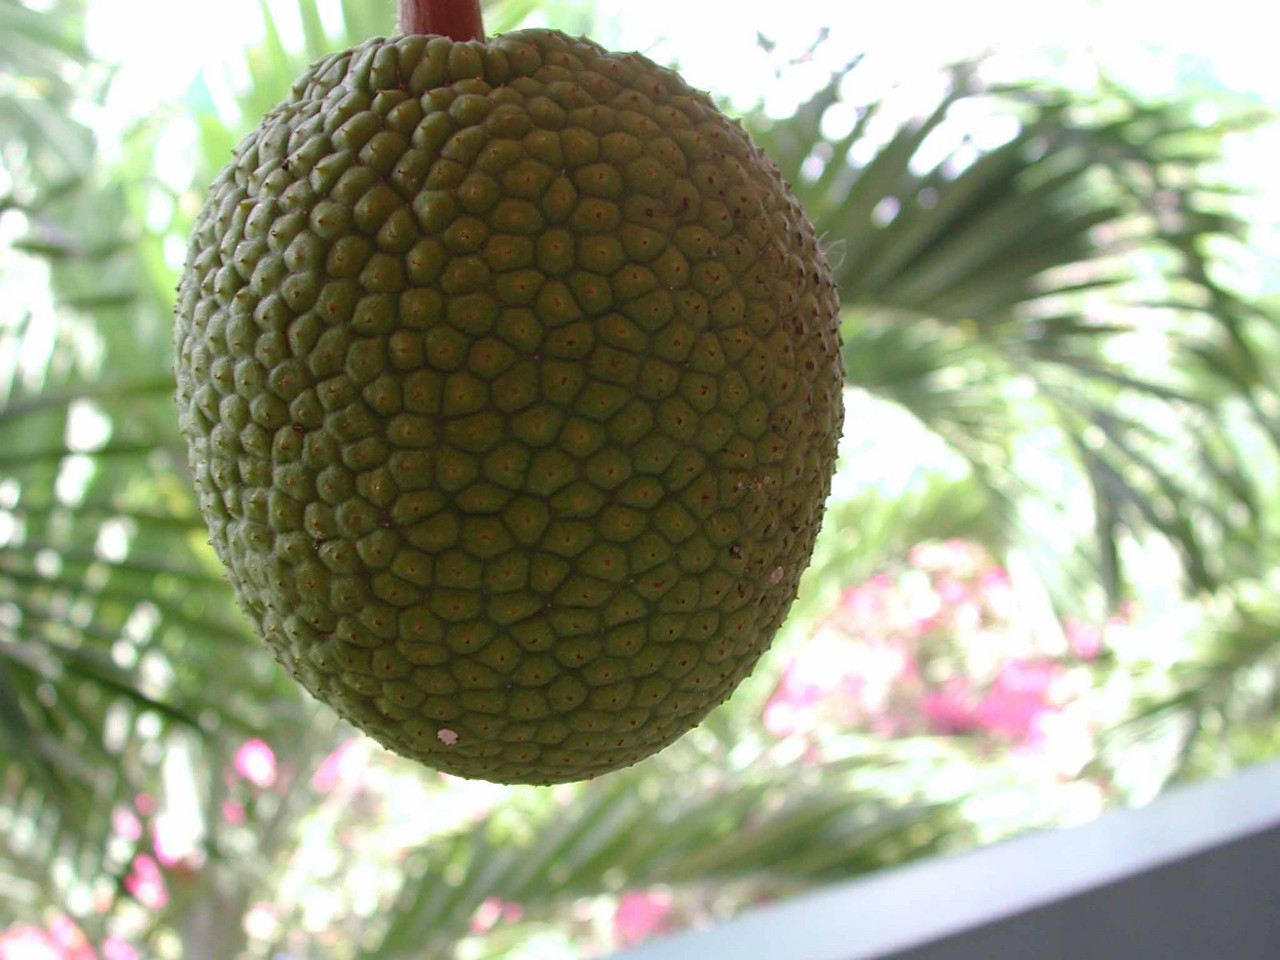 "a likkle breadfruit -- Artocarpus altilis, a flowering tree in the Mulberry family (Moraceae) is one of the highest yielding food plants in the world<br /> <br /> Marquesan islanders made a fermented pudding called 'ma' from breadfruit in stone-lined, air-tight pits in the ground, a food preservation practice common among many south pacific people, capable of preserving breadfruit for years to prevent famine.  Herman Melville ate ma for a month with the Marquesans after he deserted his ship in Nukuhiva in 1841, and later wrote in his book Typee:  ""after the lapse of a few days I became accustomed to its singular flavor, and grew remarkably fond of it.""<br /> <br /> British colonial administrators introduced breadfruit to the Caribbean as a cheap, high-energy food source for slaves.  In 1787 William Bligh was made captain of the Bounty and tasked with exporting the plants from Tahiti to the West Indies.  Bligh survived the infamous mutiny during that mission to complete a second expedition in 1791, when breadfruit plants were delivered to St Vincent in Jamaica and St Helena in the South Atlantic.  He also collected samples of the ackee fruit tree native to Jamaica, later named Blighia sapida.  Bligh's tomb is topped with a breadfruit."